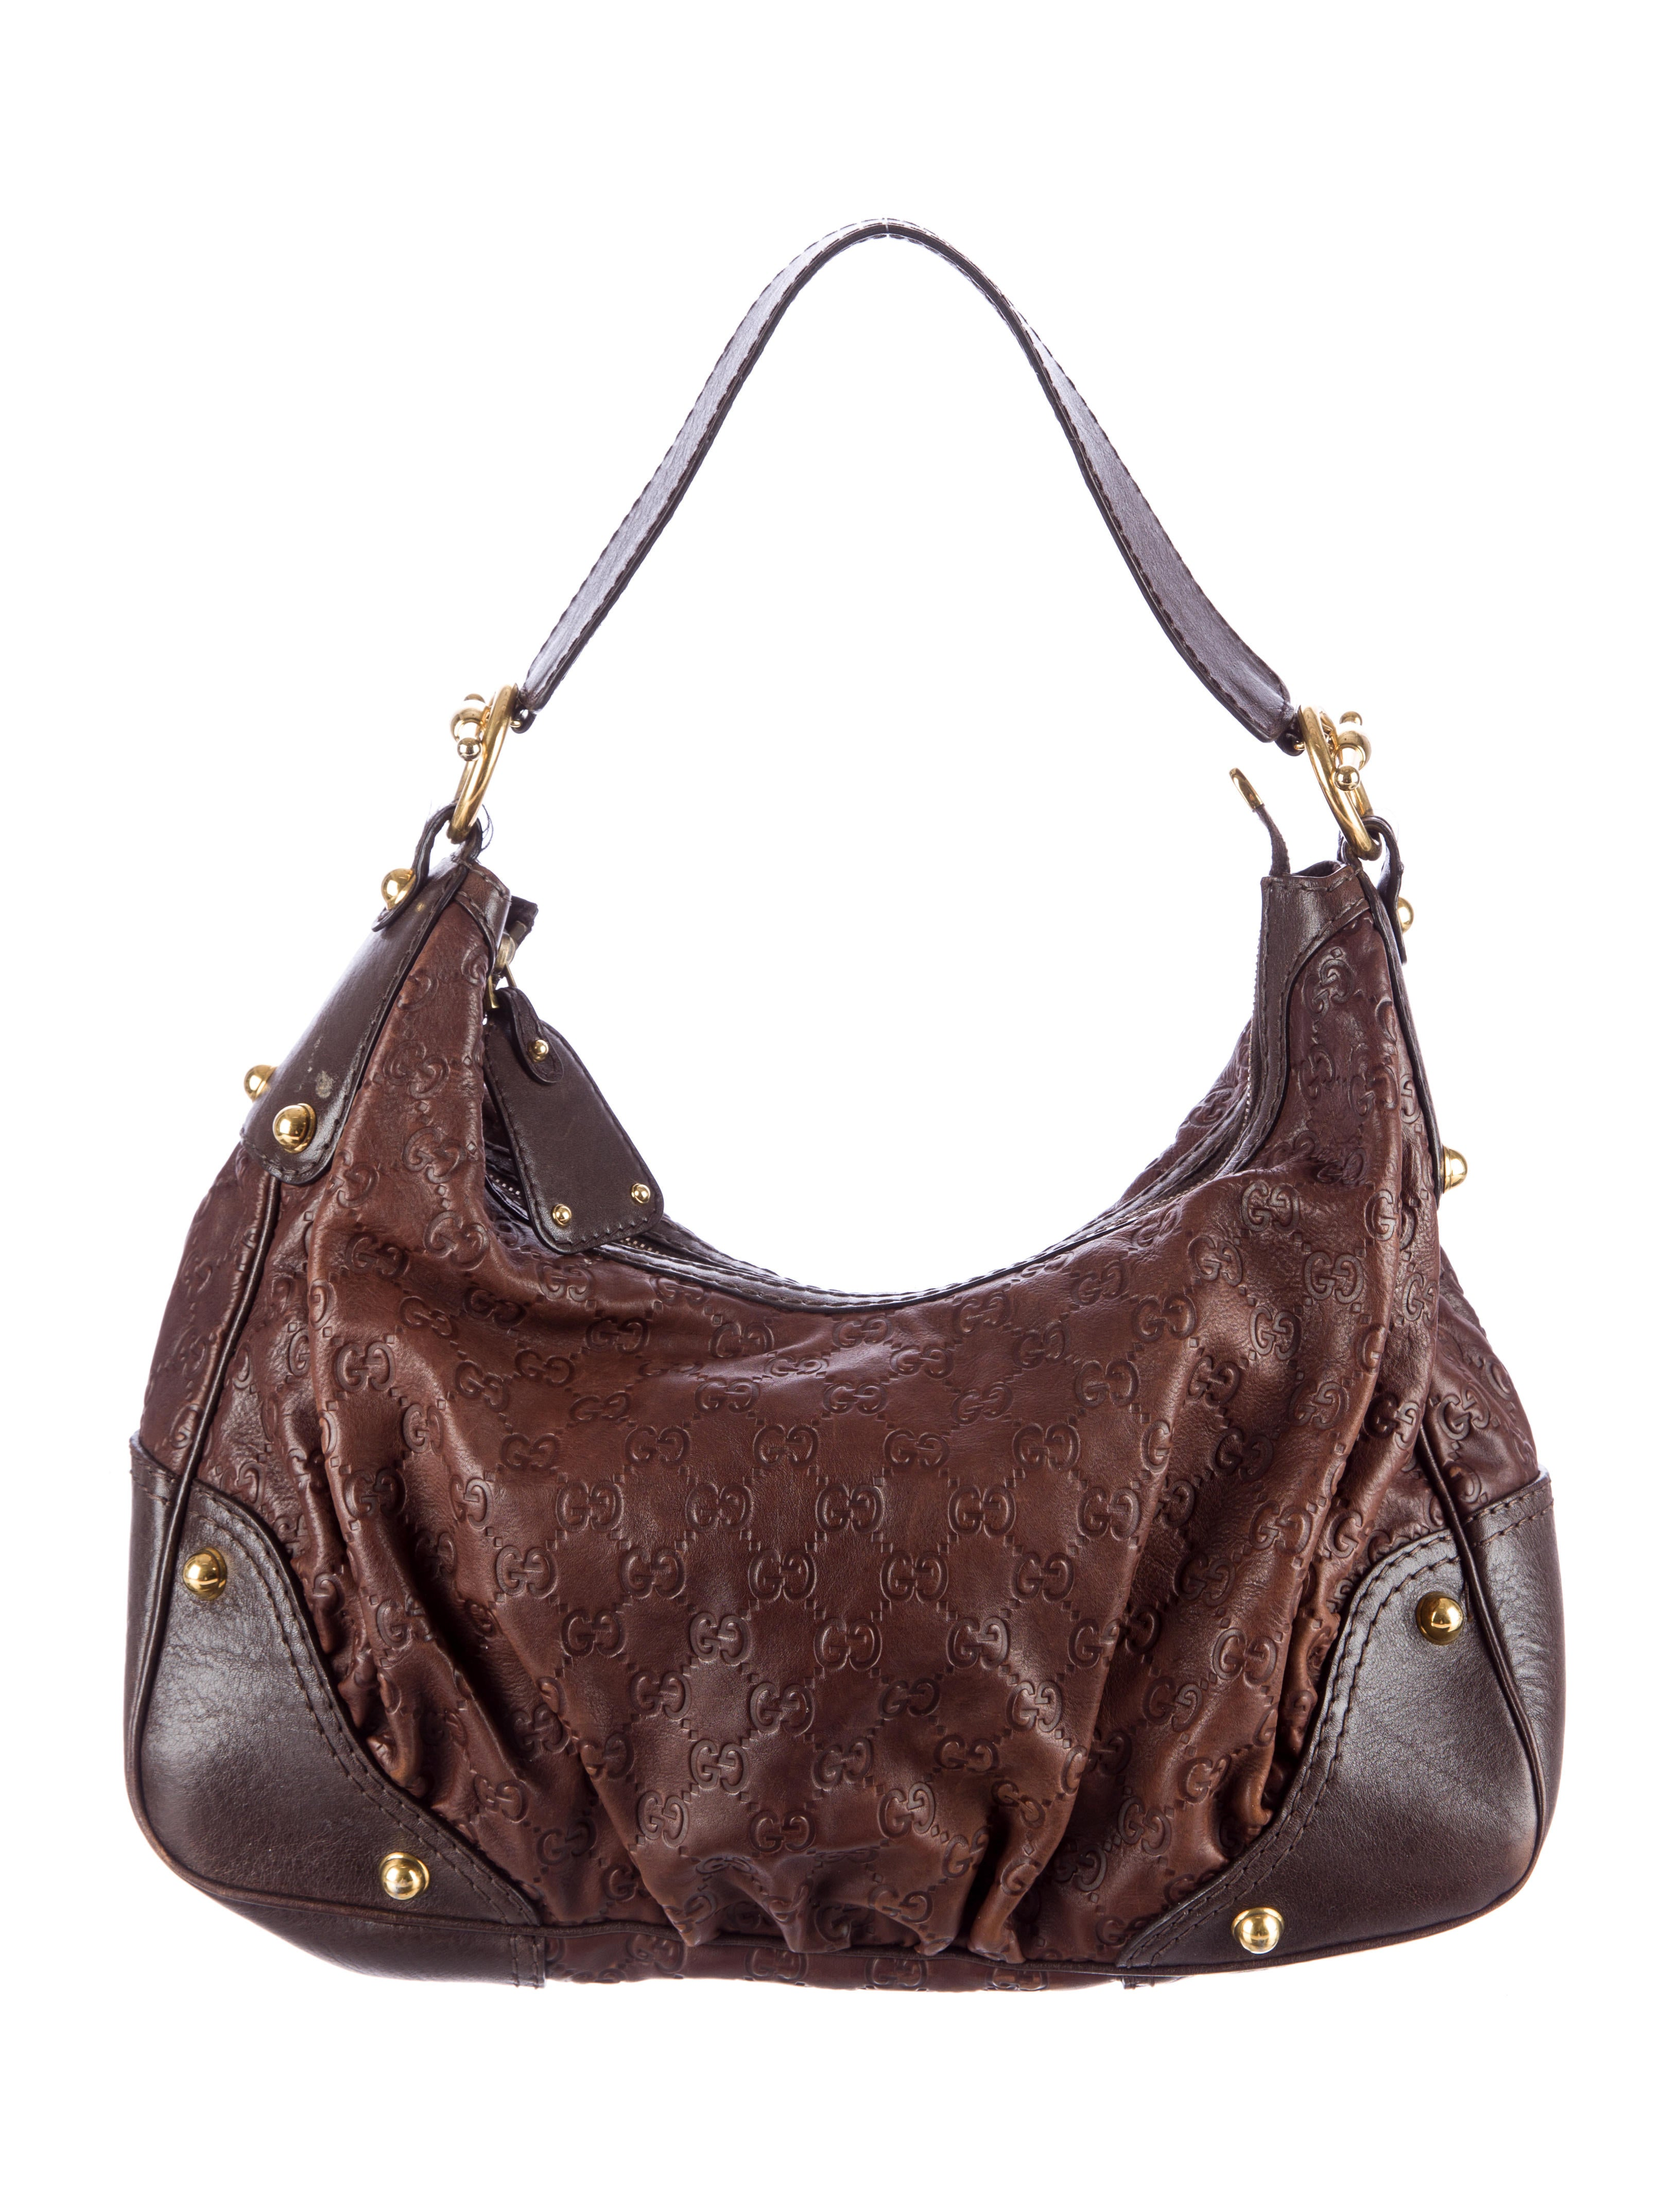 91373ad0aafc81 Guccissima Handbags | Stanford Center for Opportunity Policy in ...